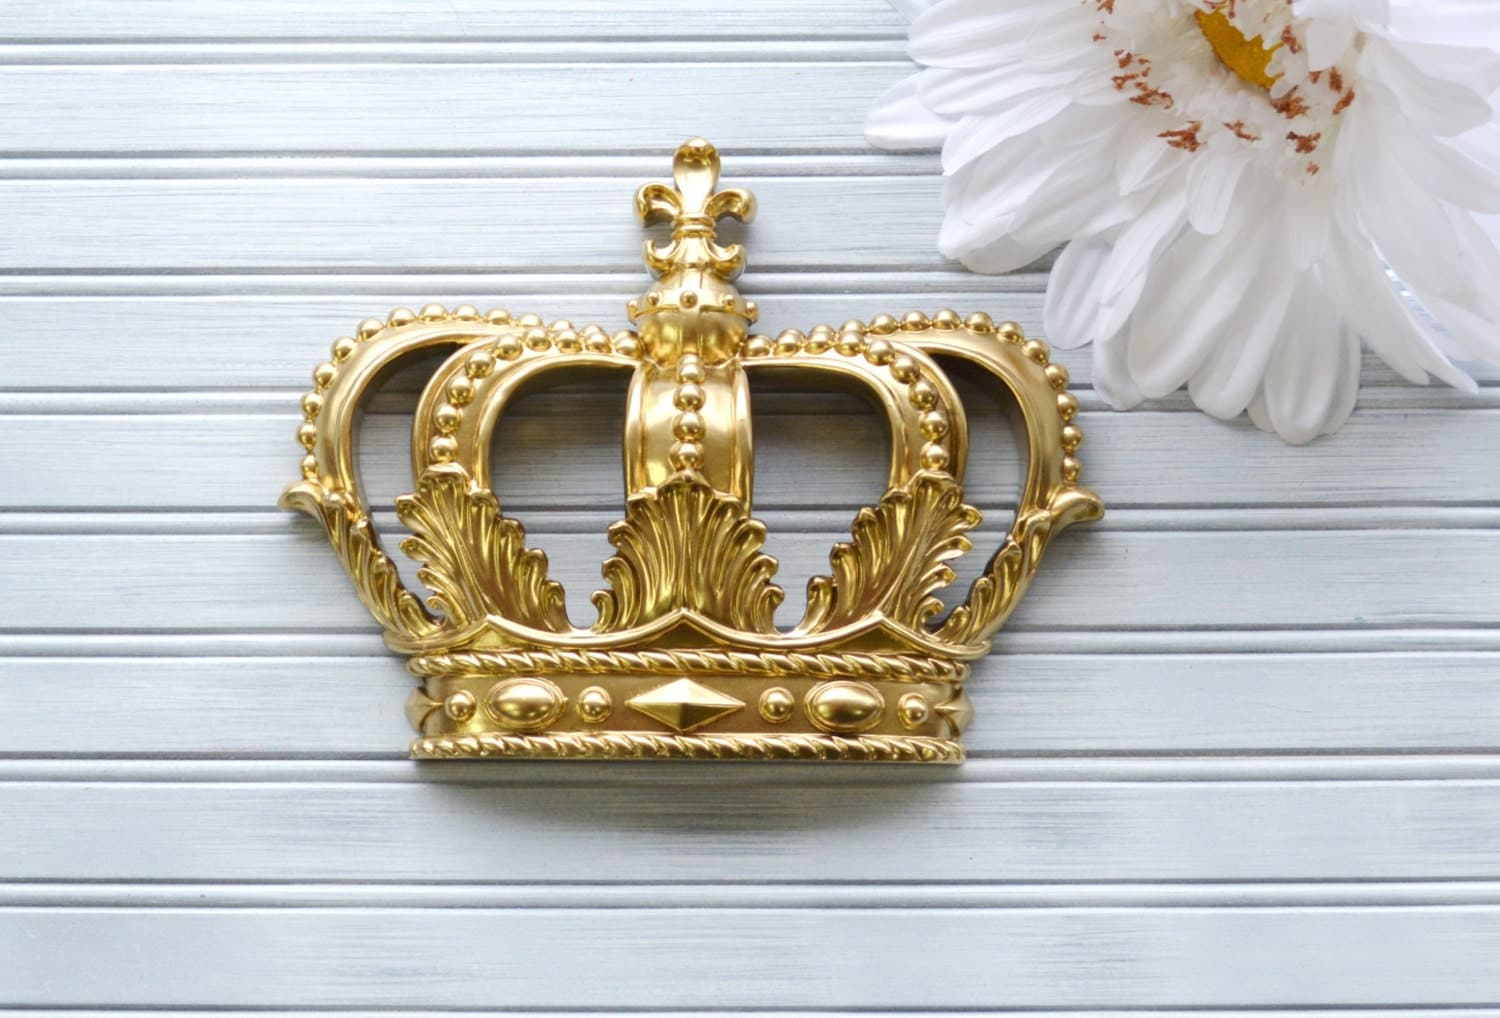 Princess crown gold crown nursery crown canopy crown decor zoom amipublicfo Gallery